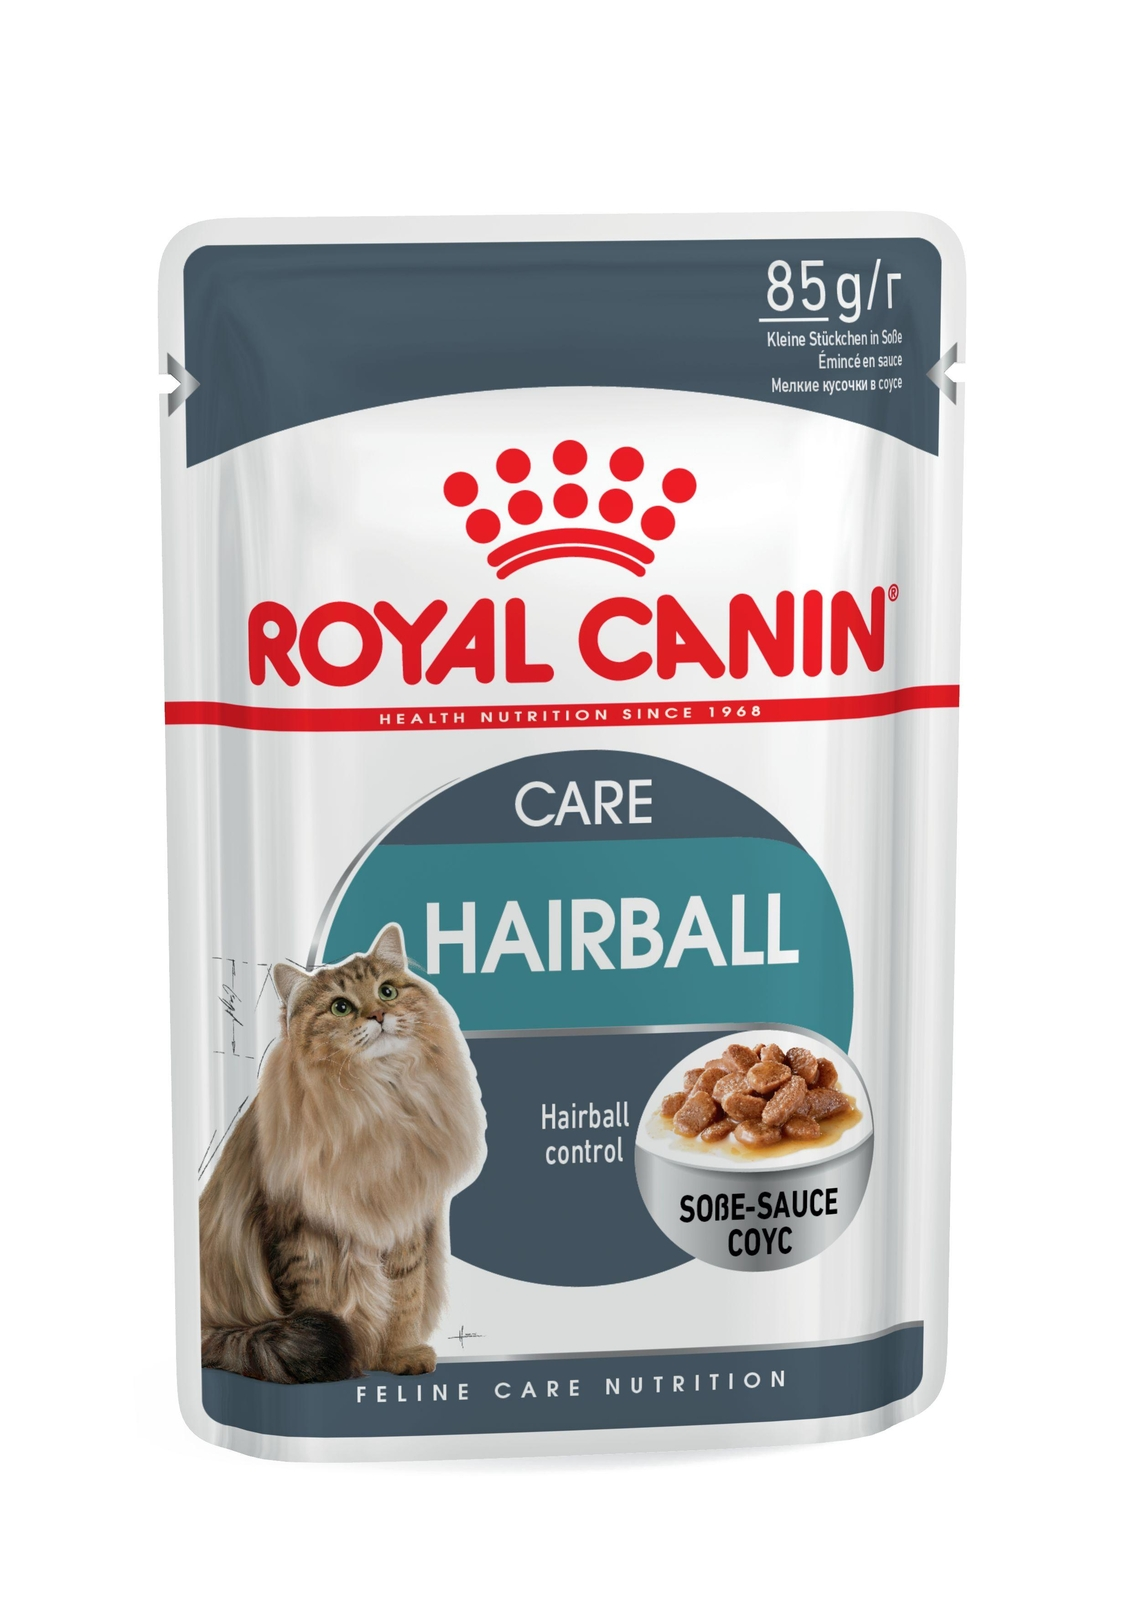 Royal Canin Hairball Care Cat Food Pouch - Ofypets